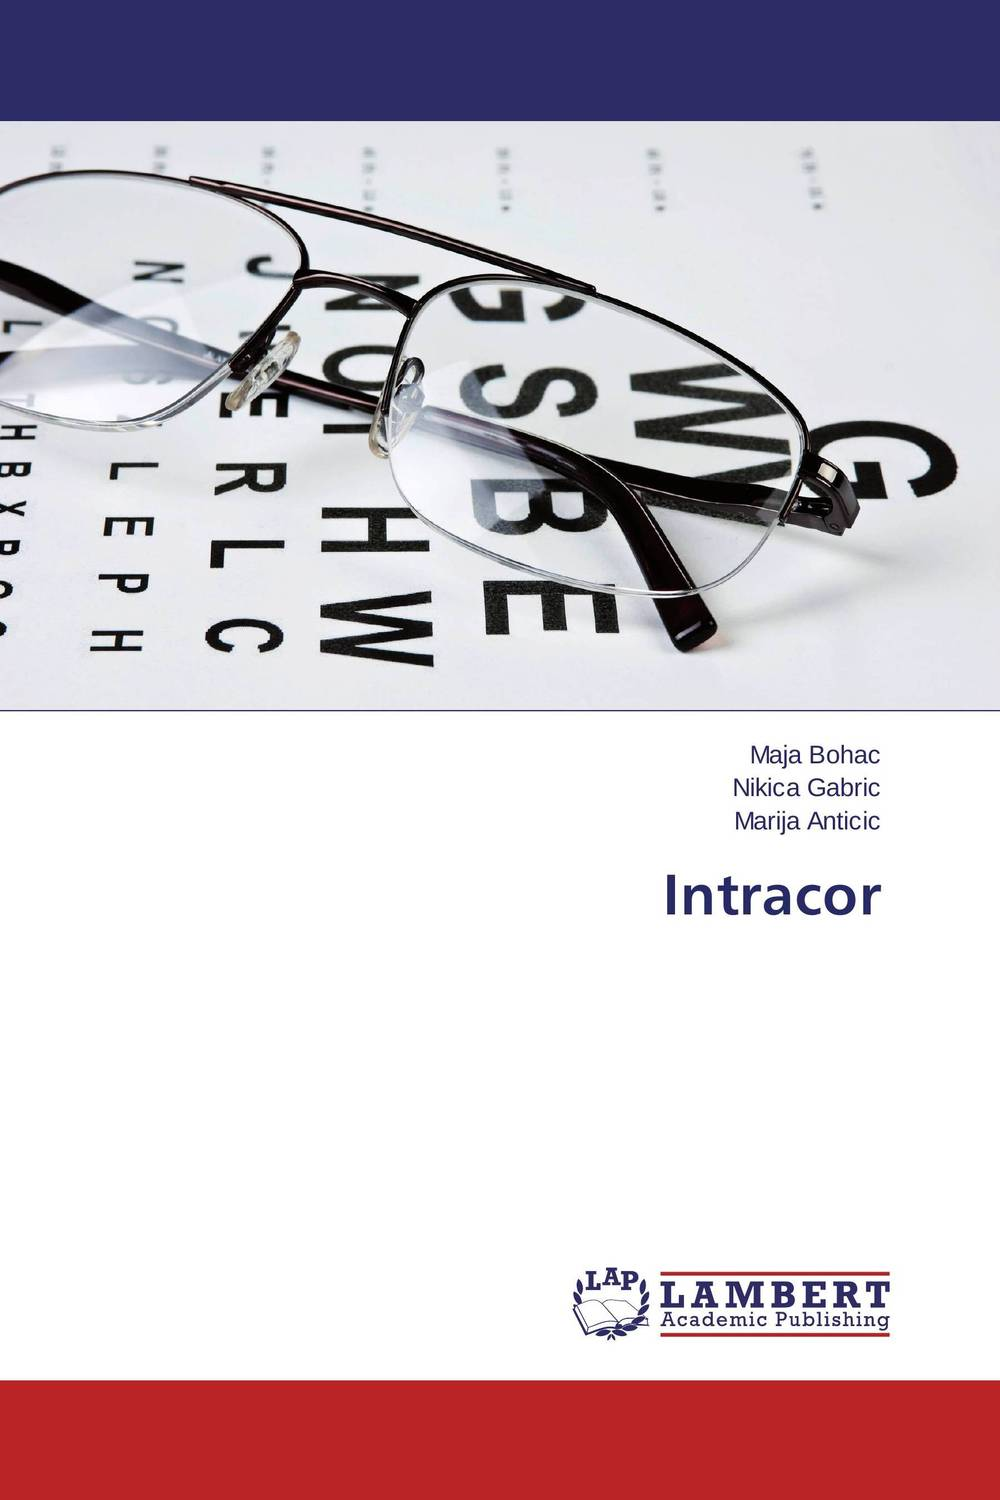 Intracor